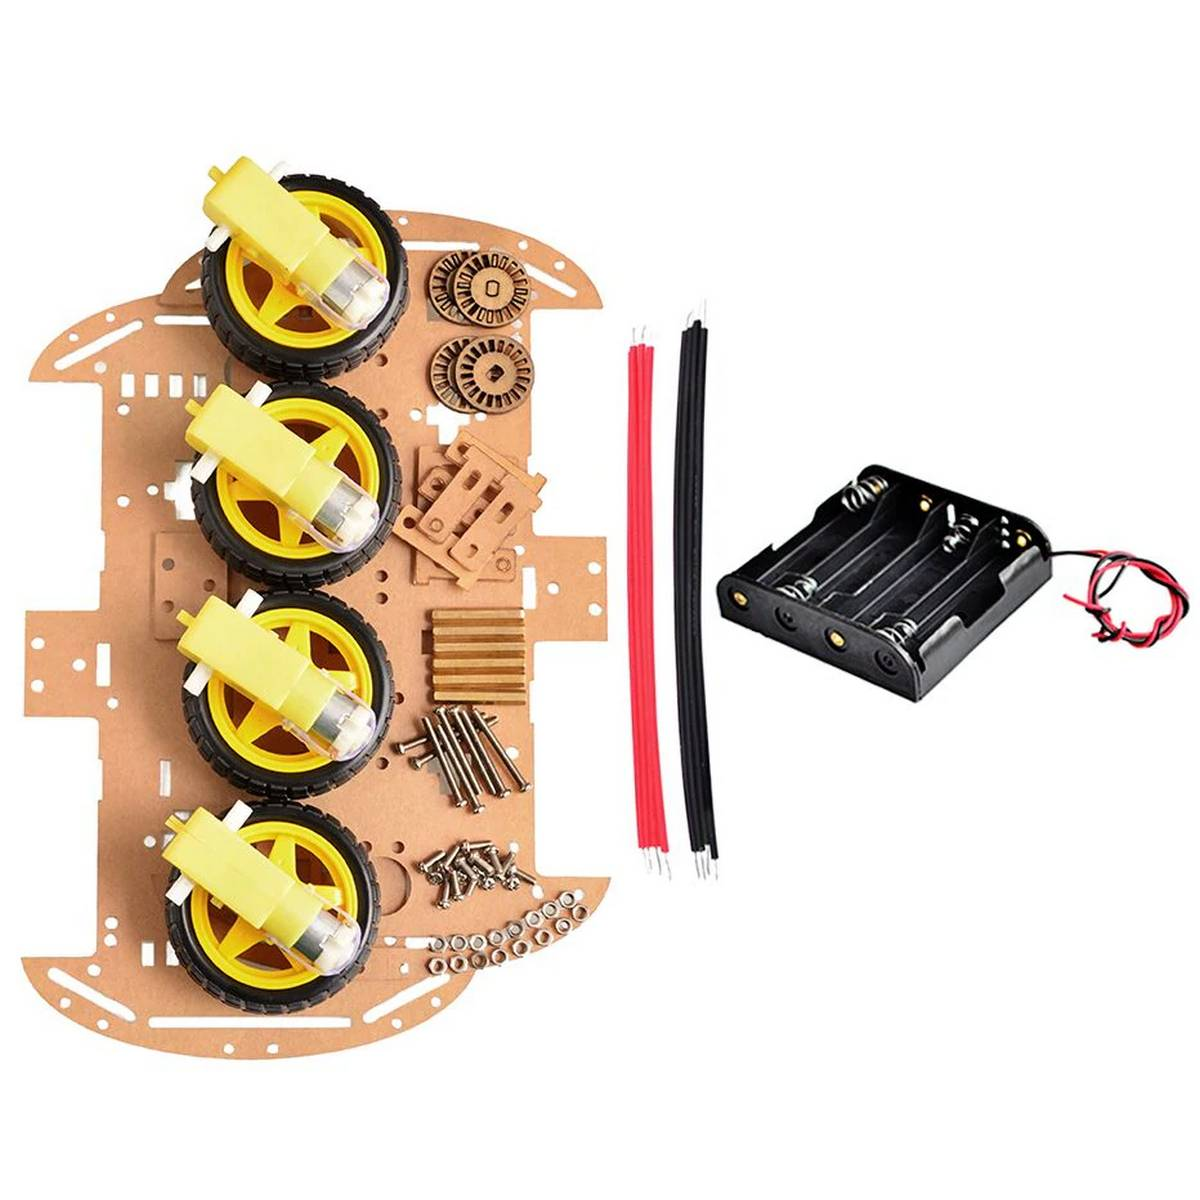 4 wheel (acrylic) Smart Robot Car Chassis 4 Wheel Kit with accessories For Diy Arduino and Raspberry pi Projects